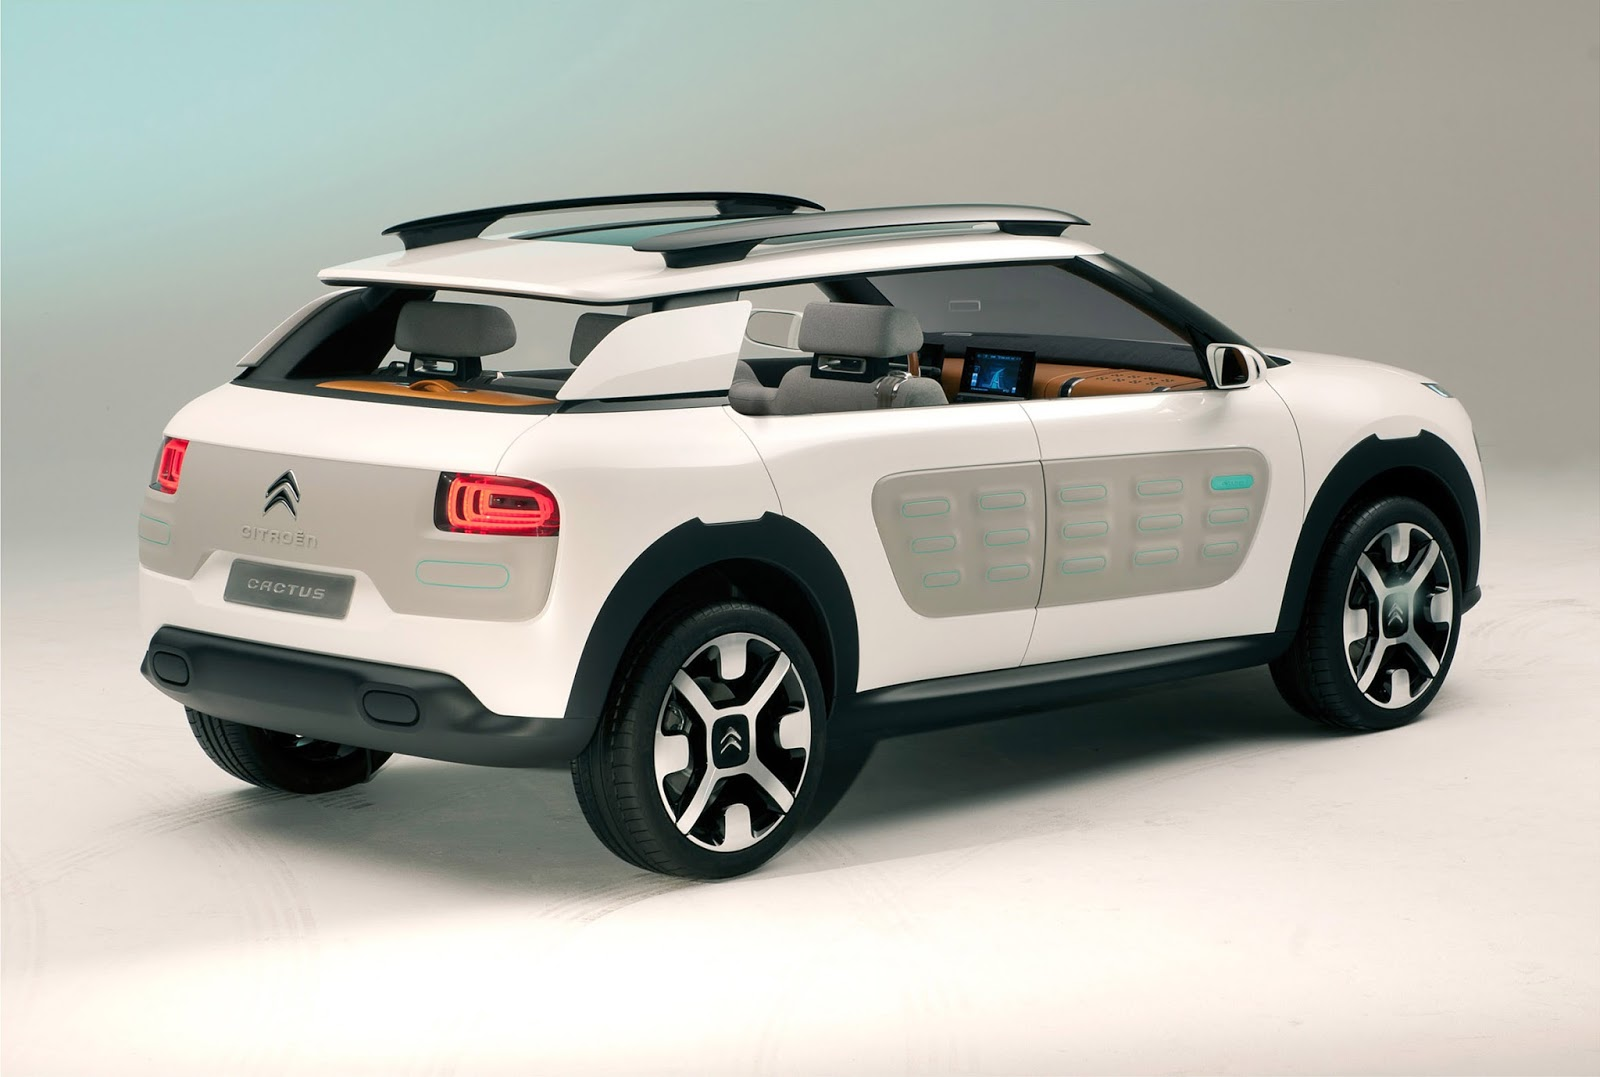 citroen cactus concept 2013 hottest car wallpapers bestgarage. Black Bedroom Furniture Sets. Home Design Ideas